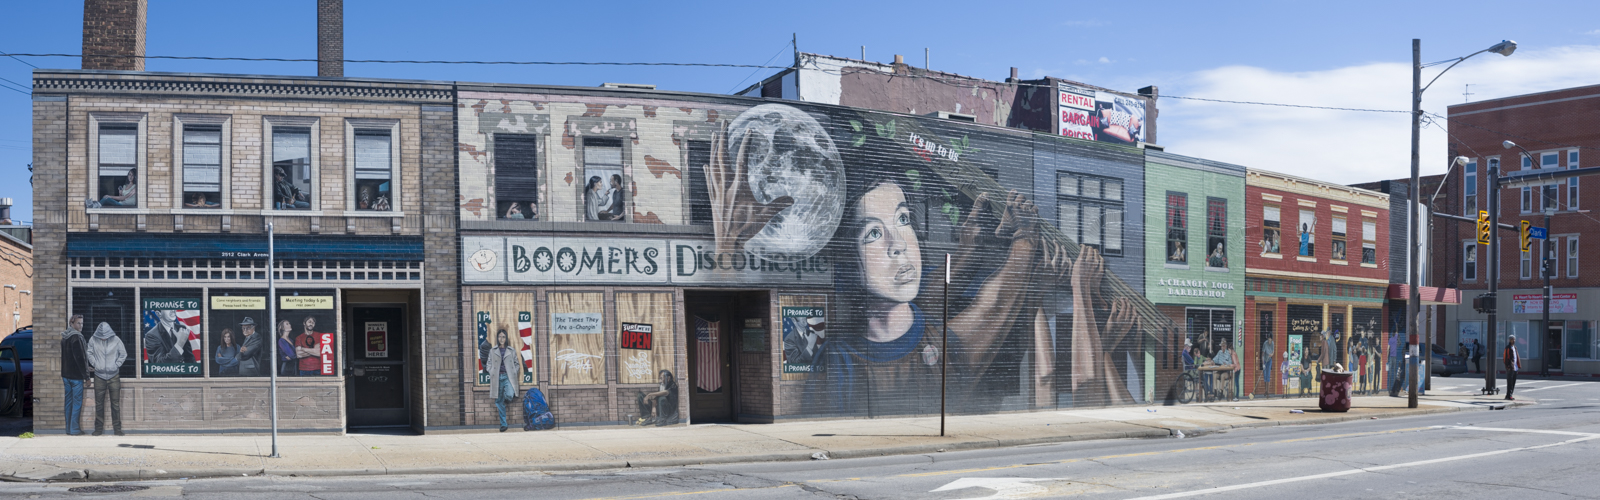 "The ""mi barrio"" mural on Clark and W25th"